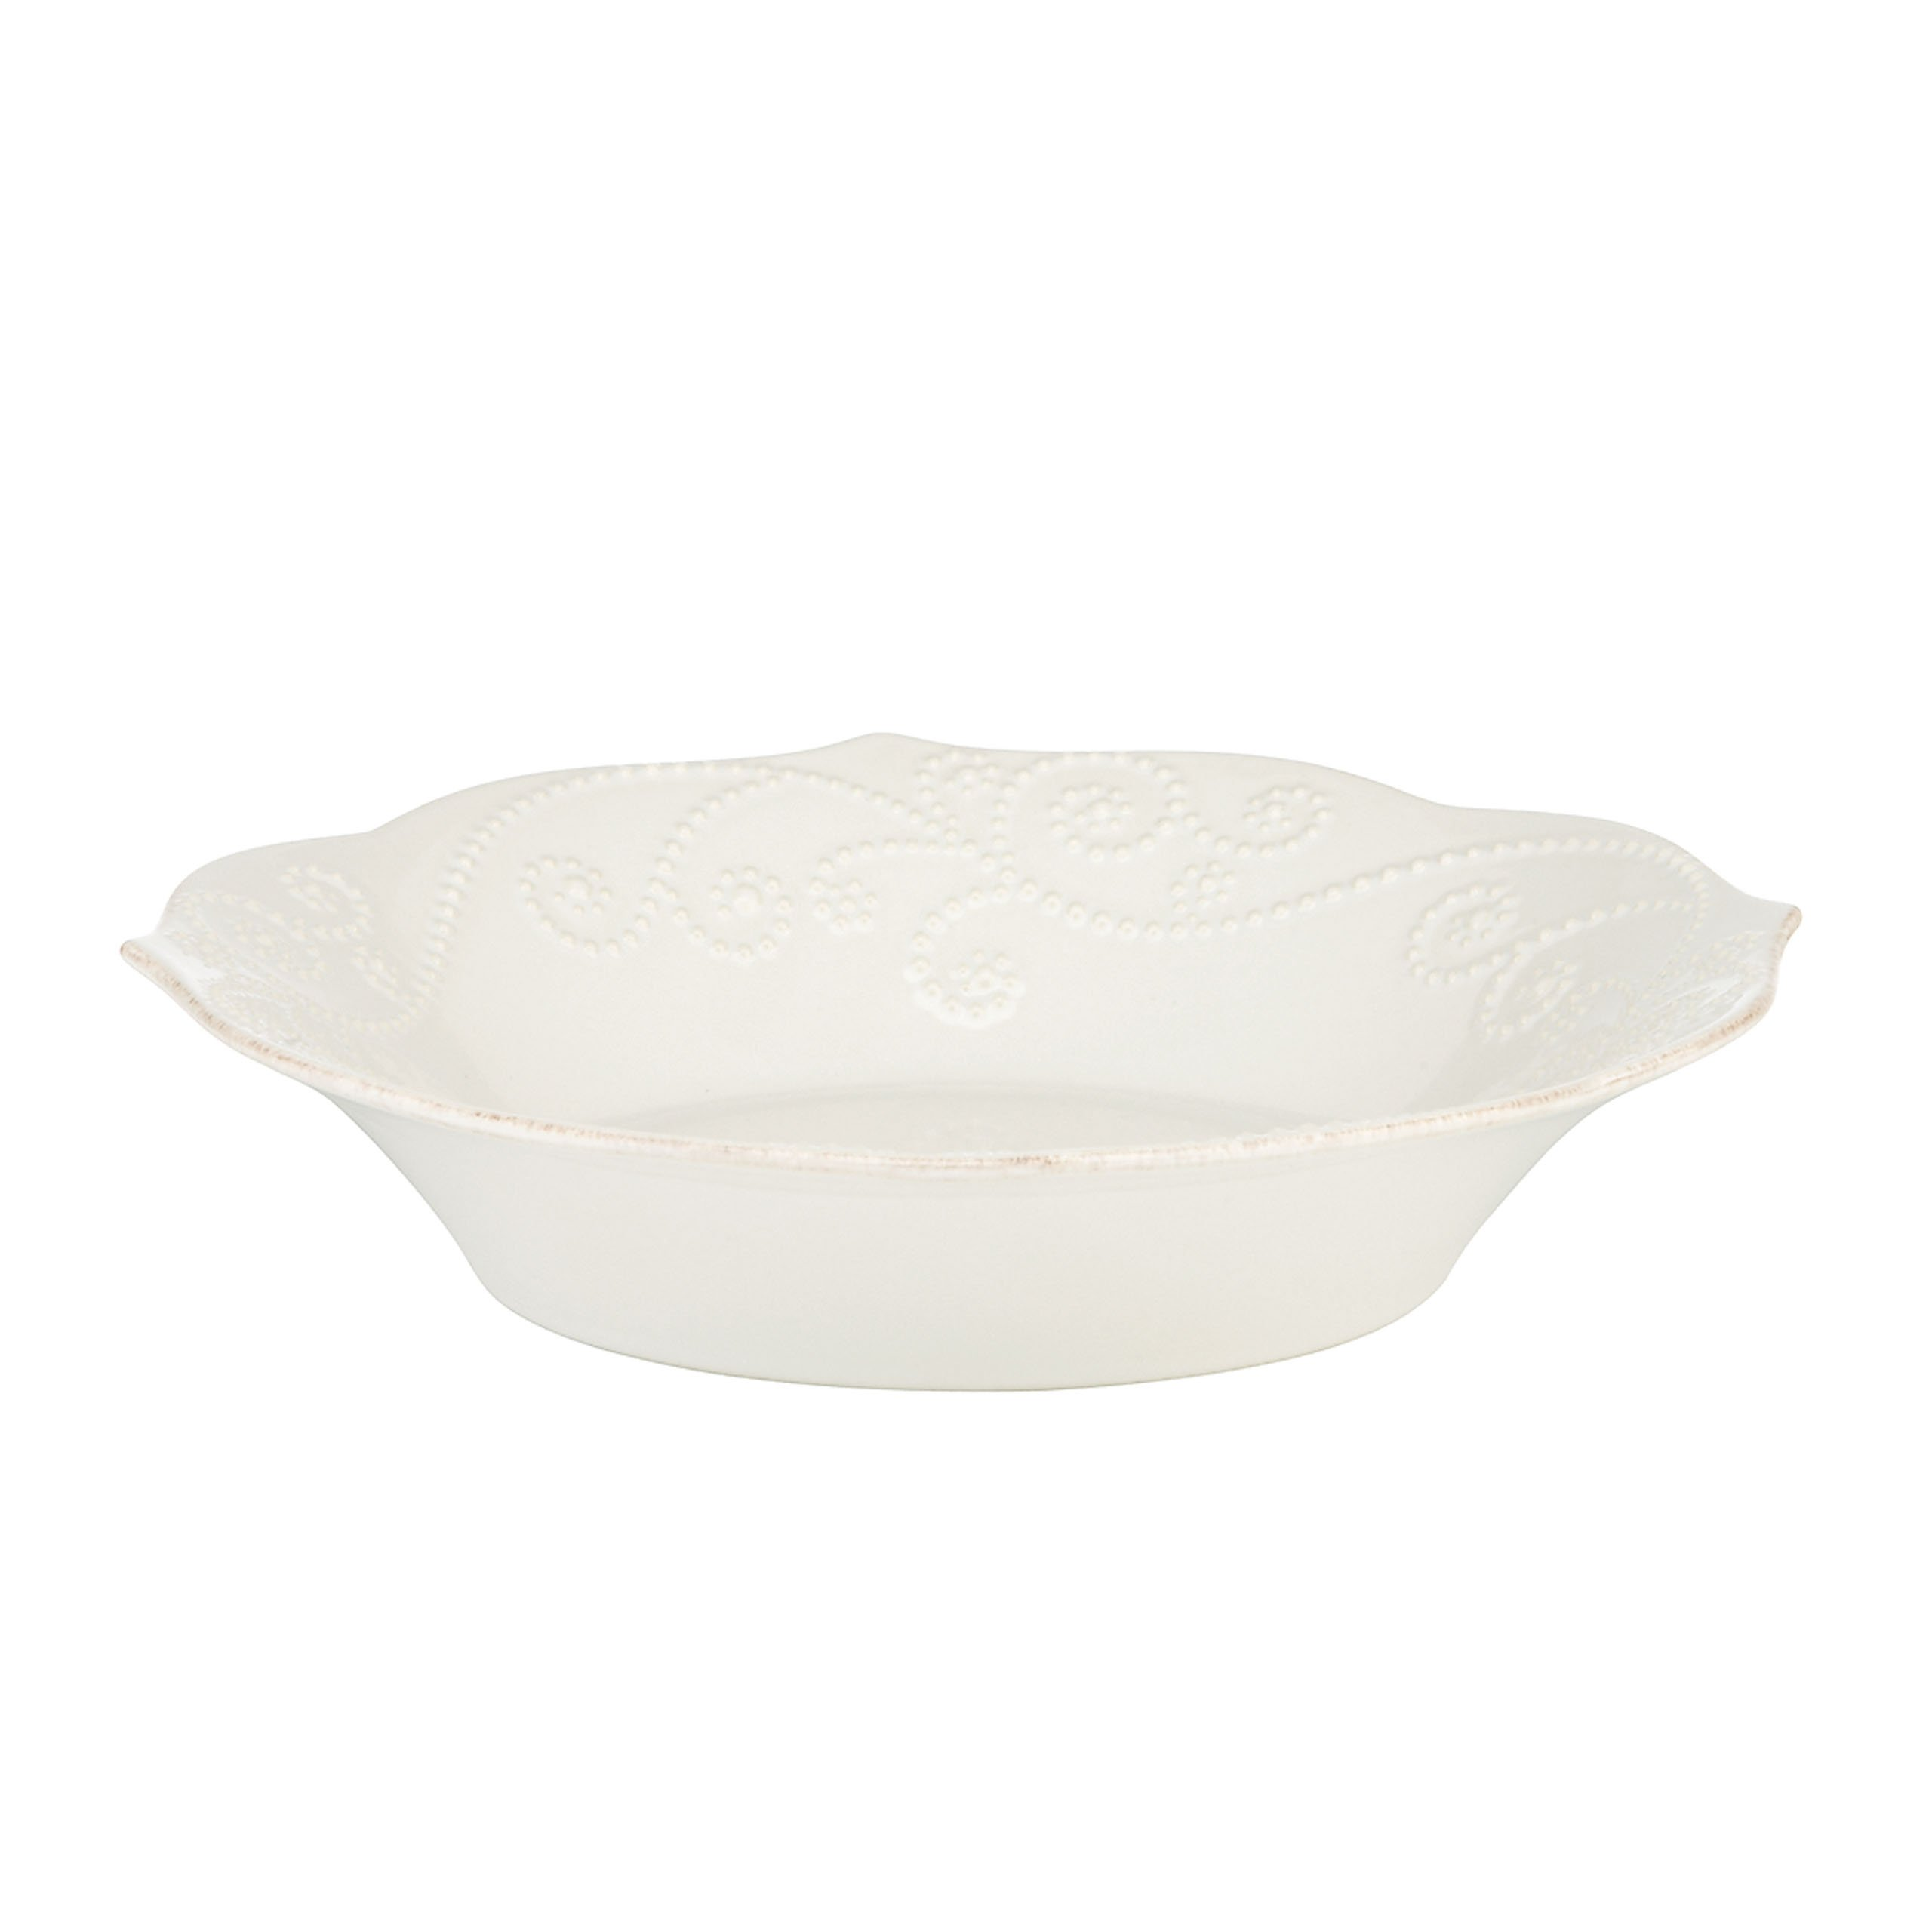 Lenox French Perle Individual Pasta Bowl, White